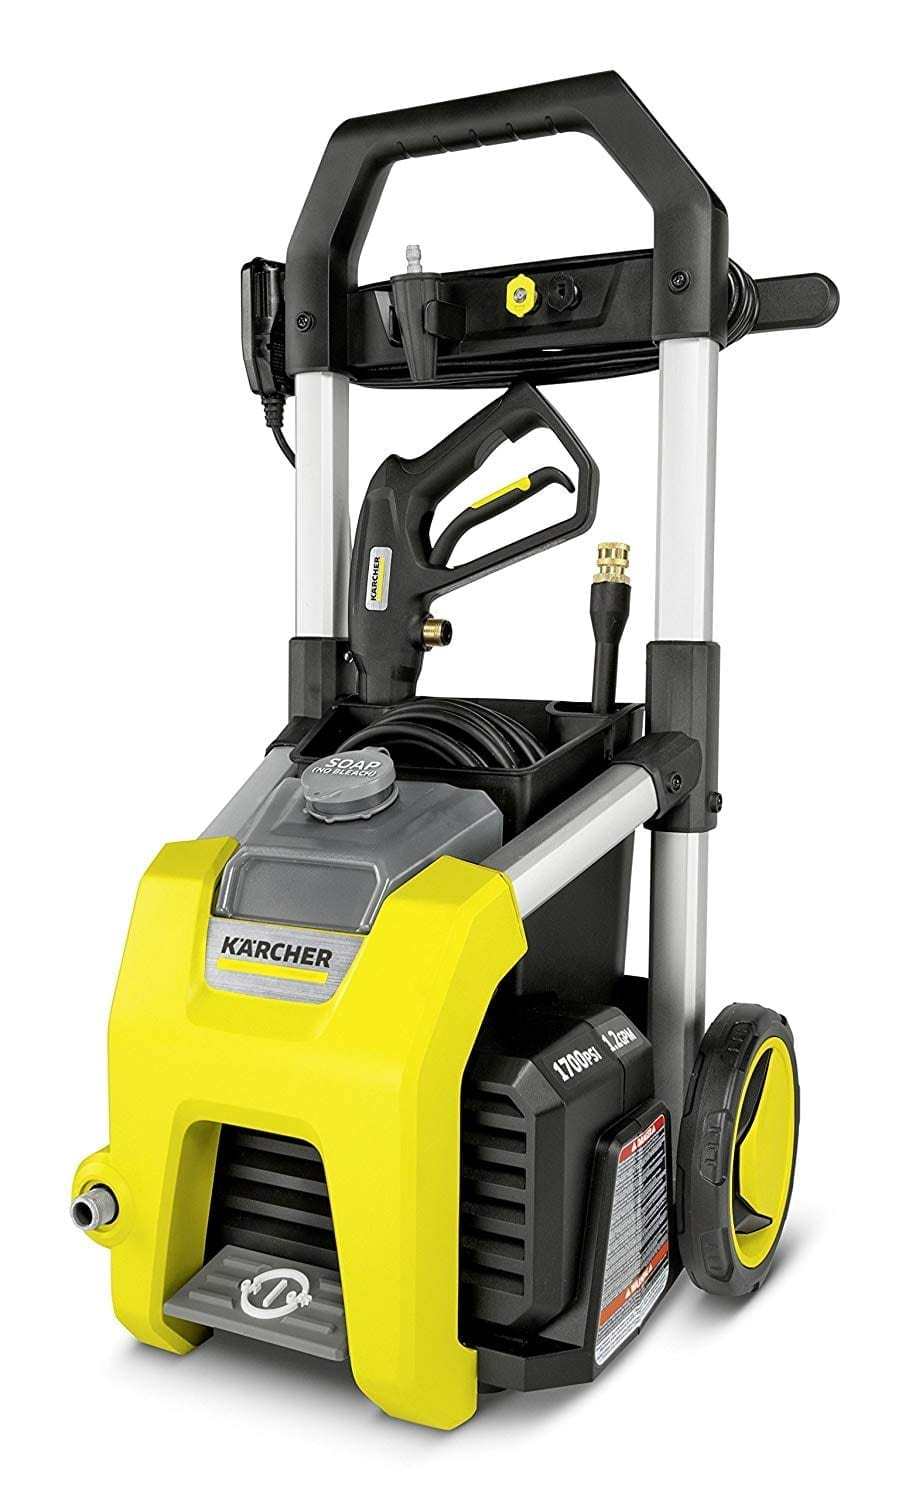 Karcher K1700 Electric Pressure Washer, 1700psi TruPressure